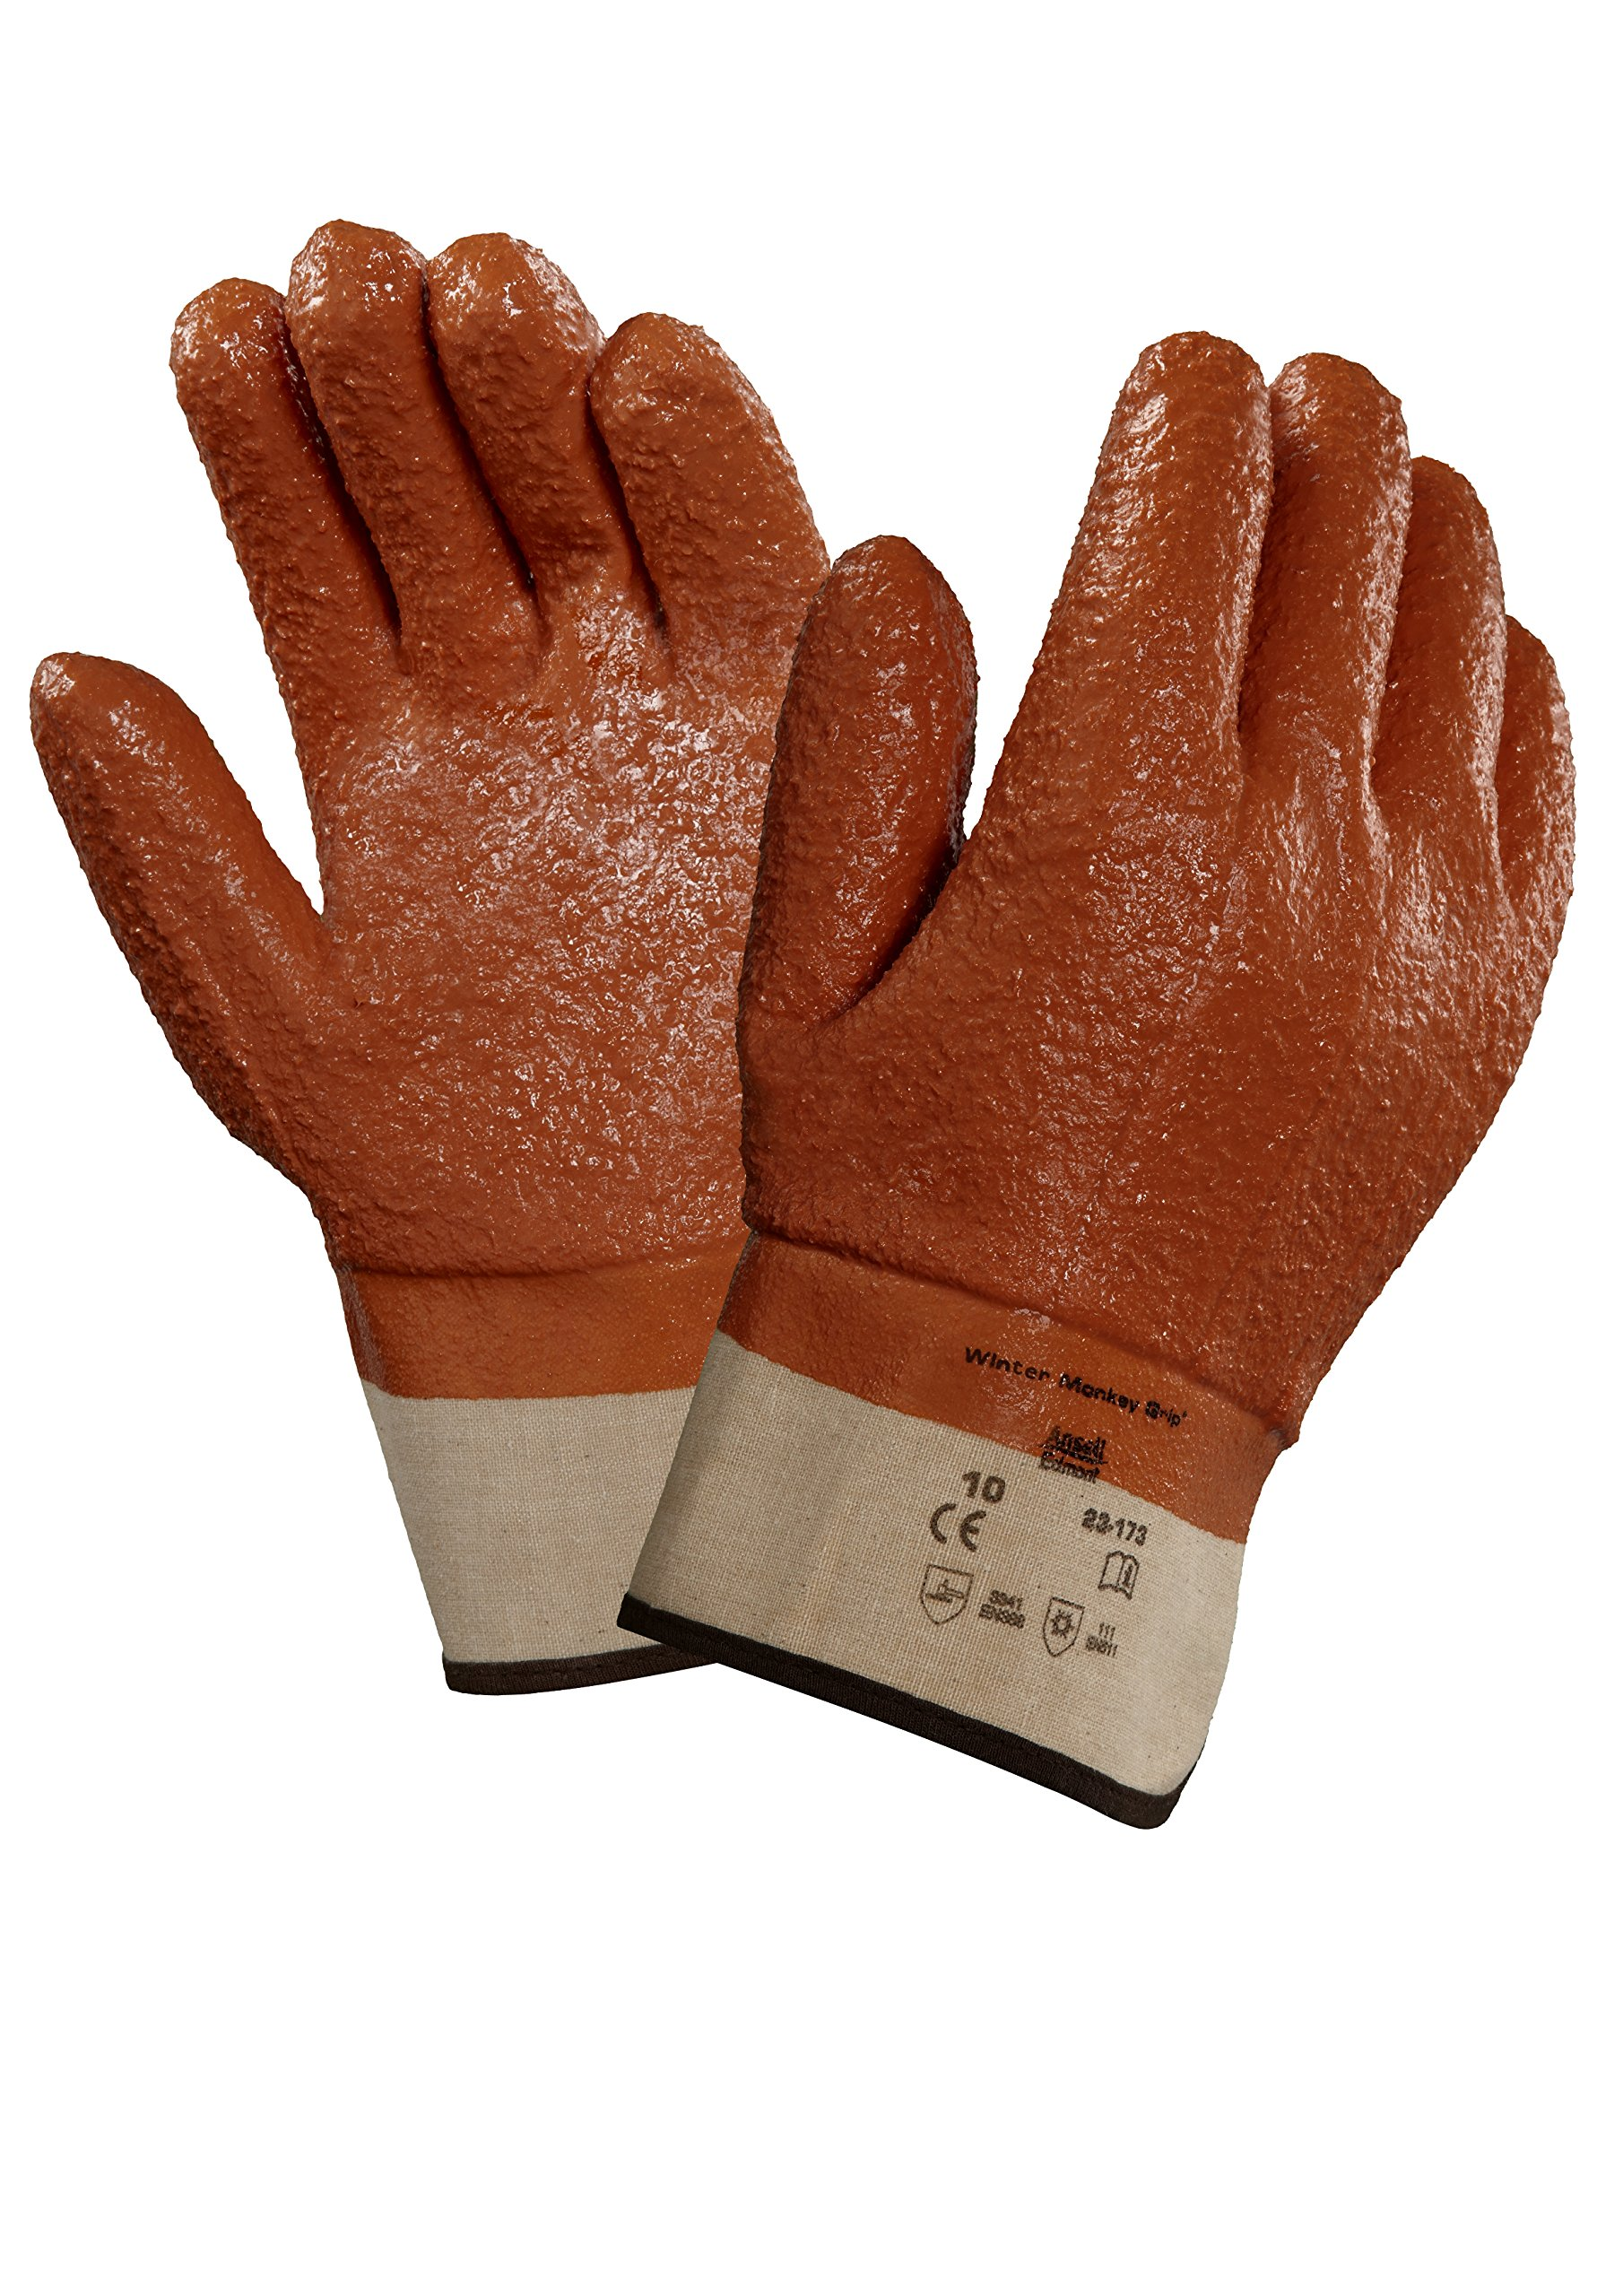 Ansell 23173 Winter Monkey Grip Vinyl-Coated, Foam-Insulated Gloves, 11'' Length, 5.5'' Width, 0.92'' Height, Size 10, Orange (Pack of 12) by Ansell (Image #1)